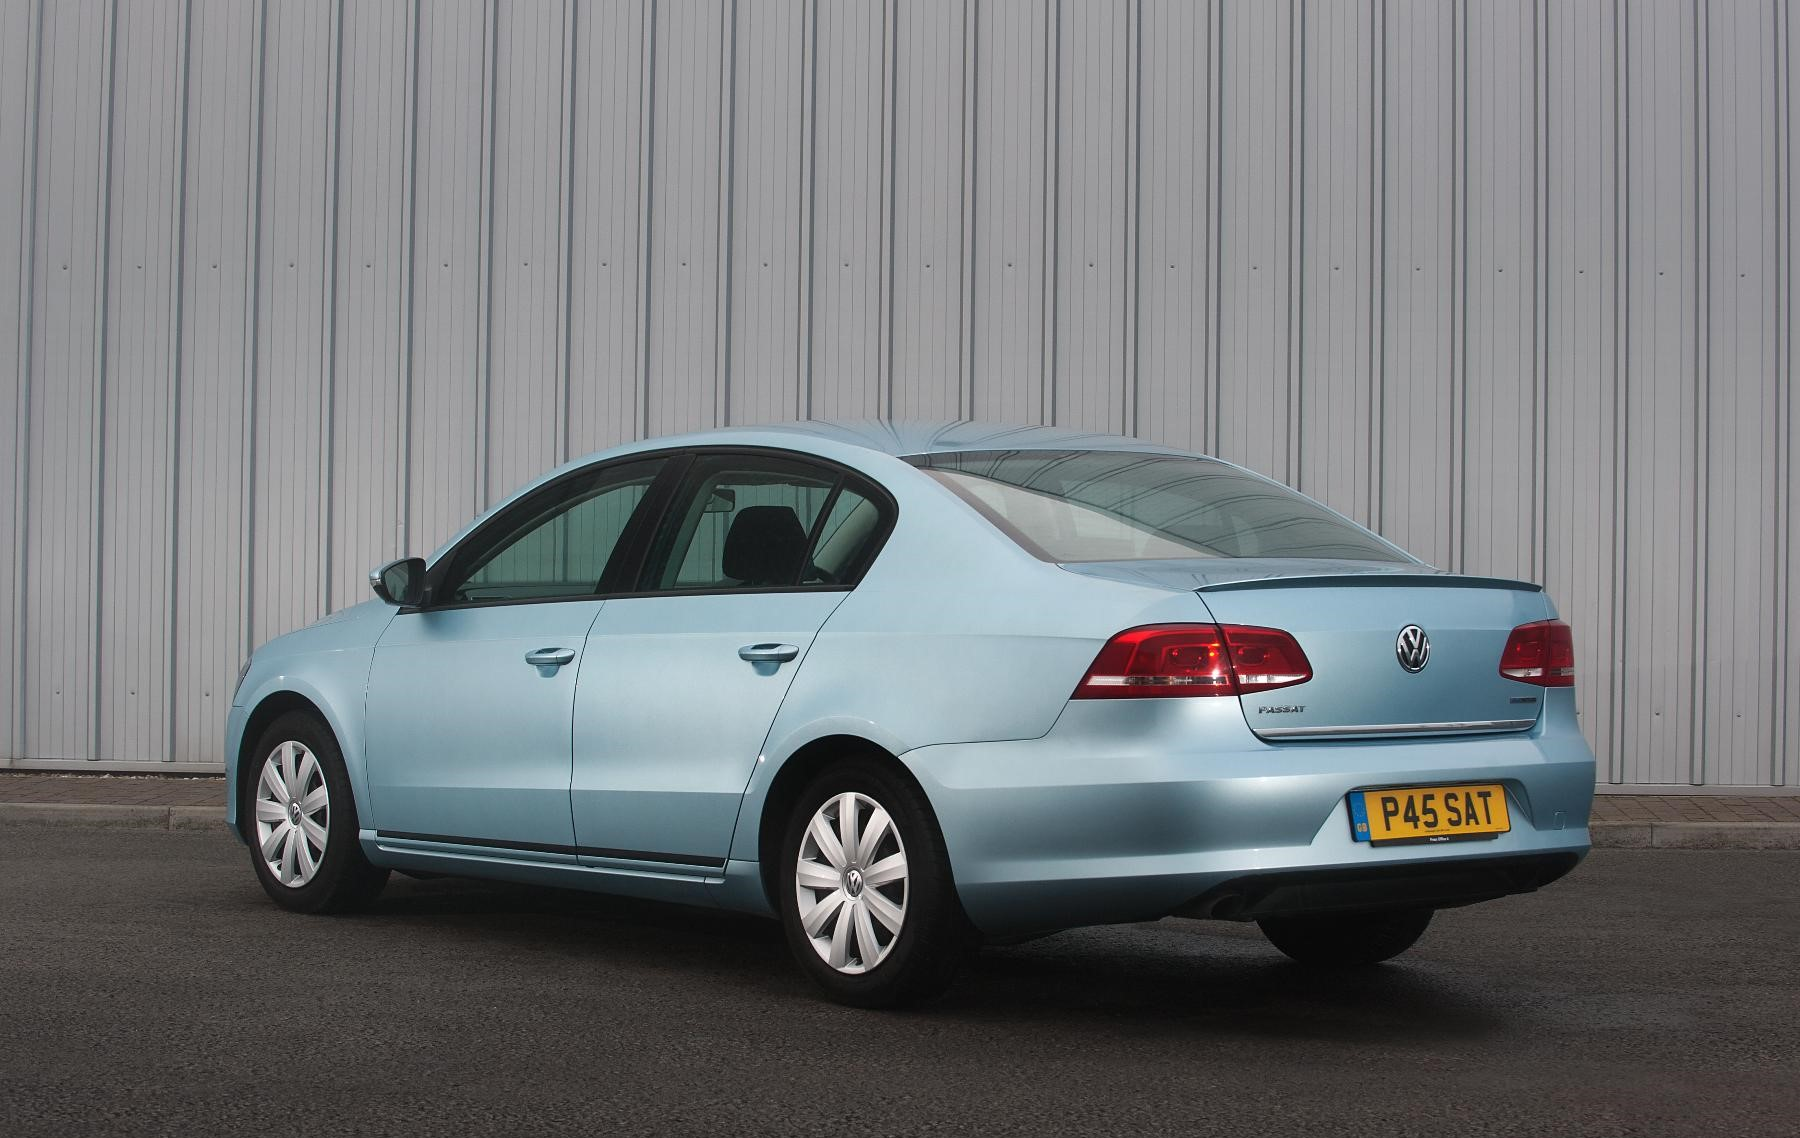 Vauxhall Passat rear view in blue